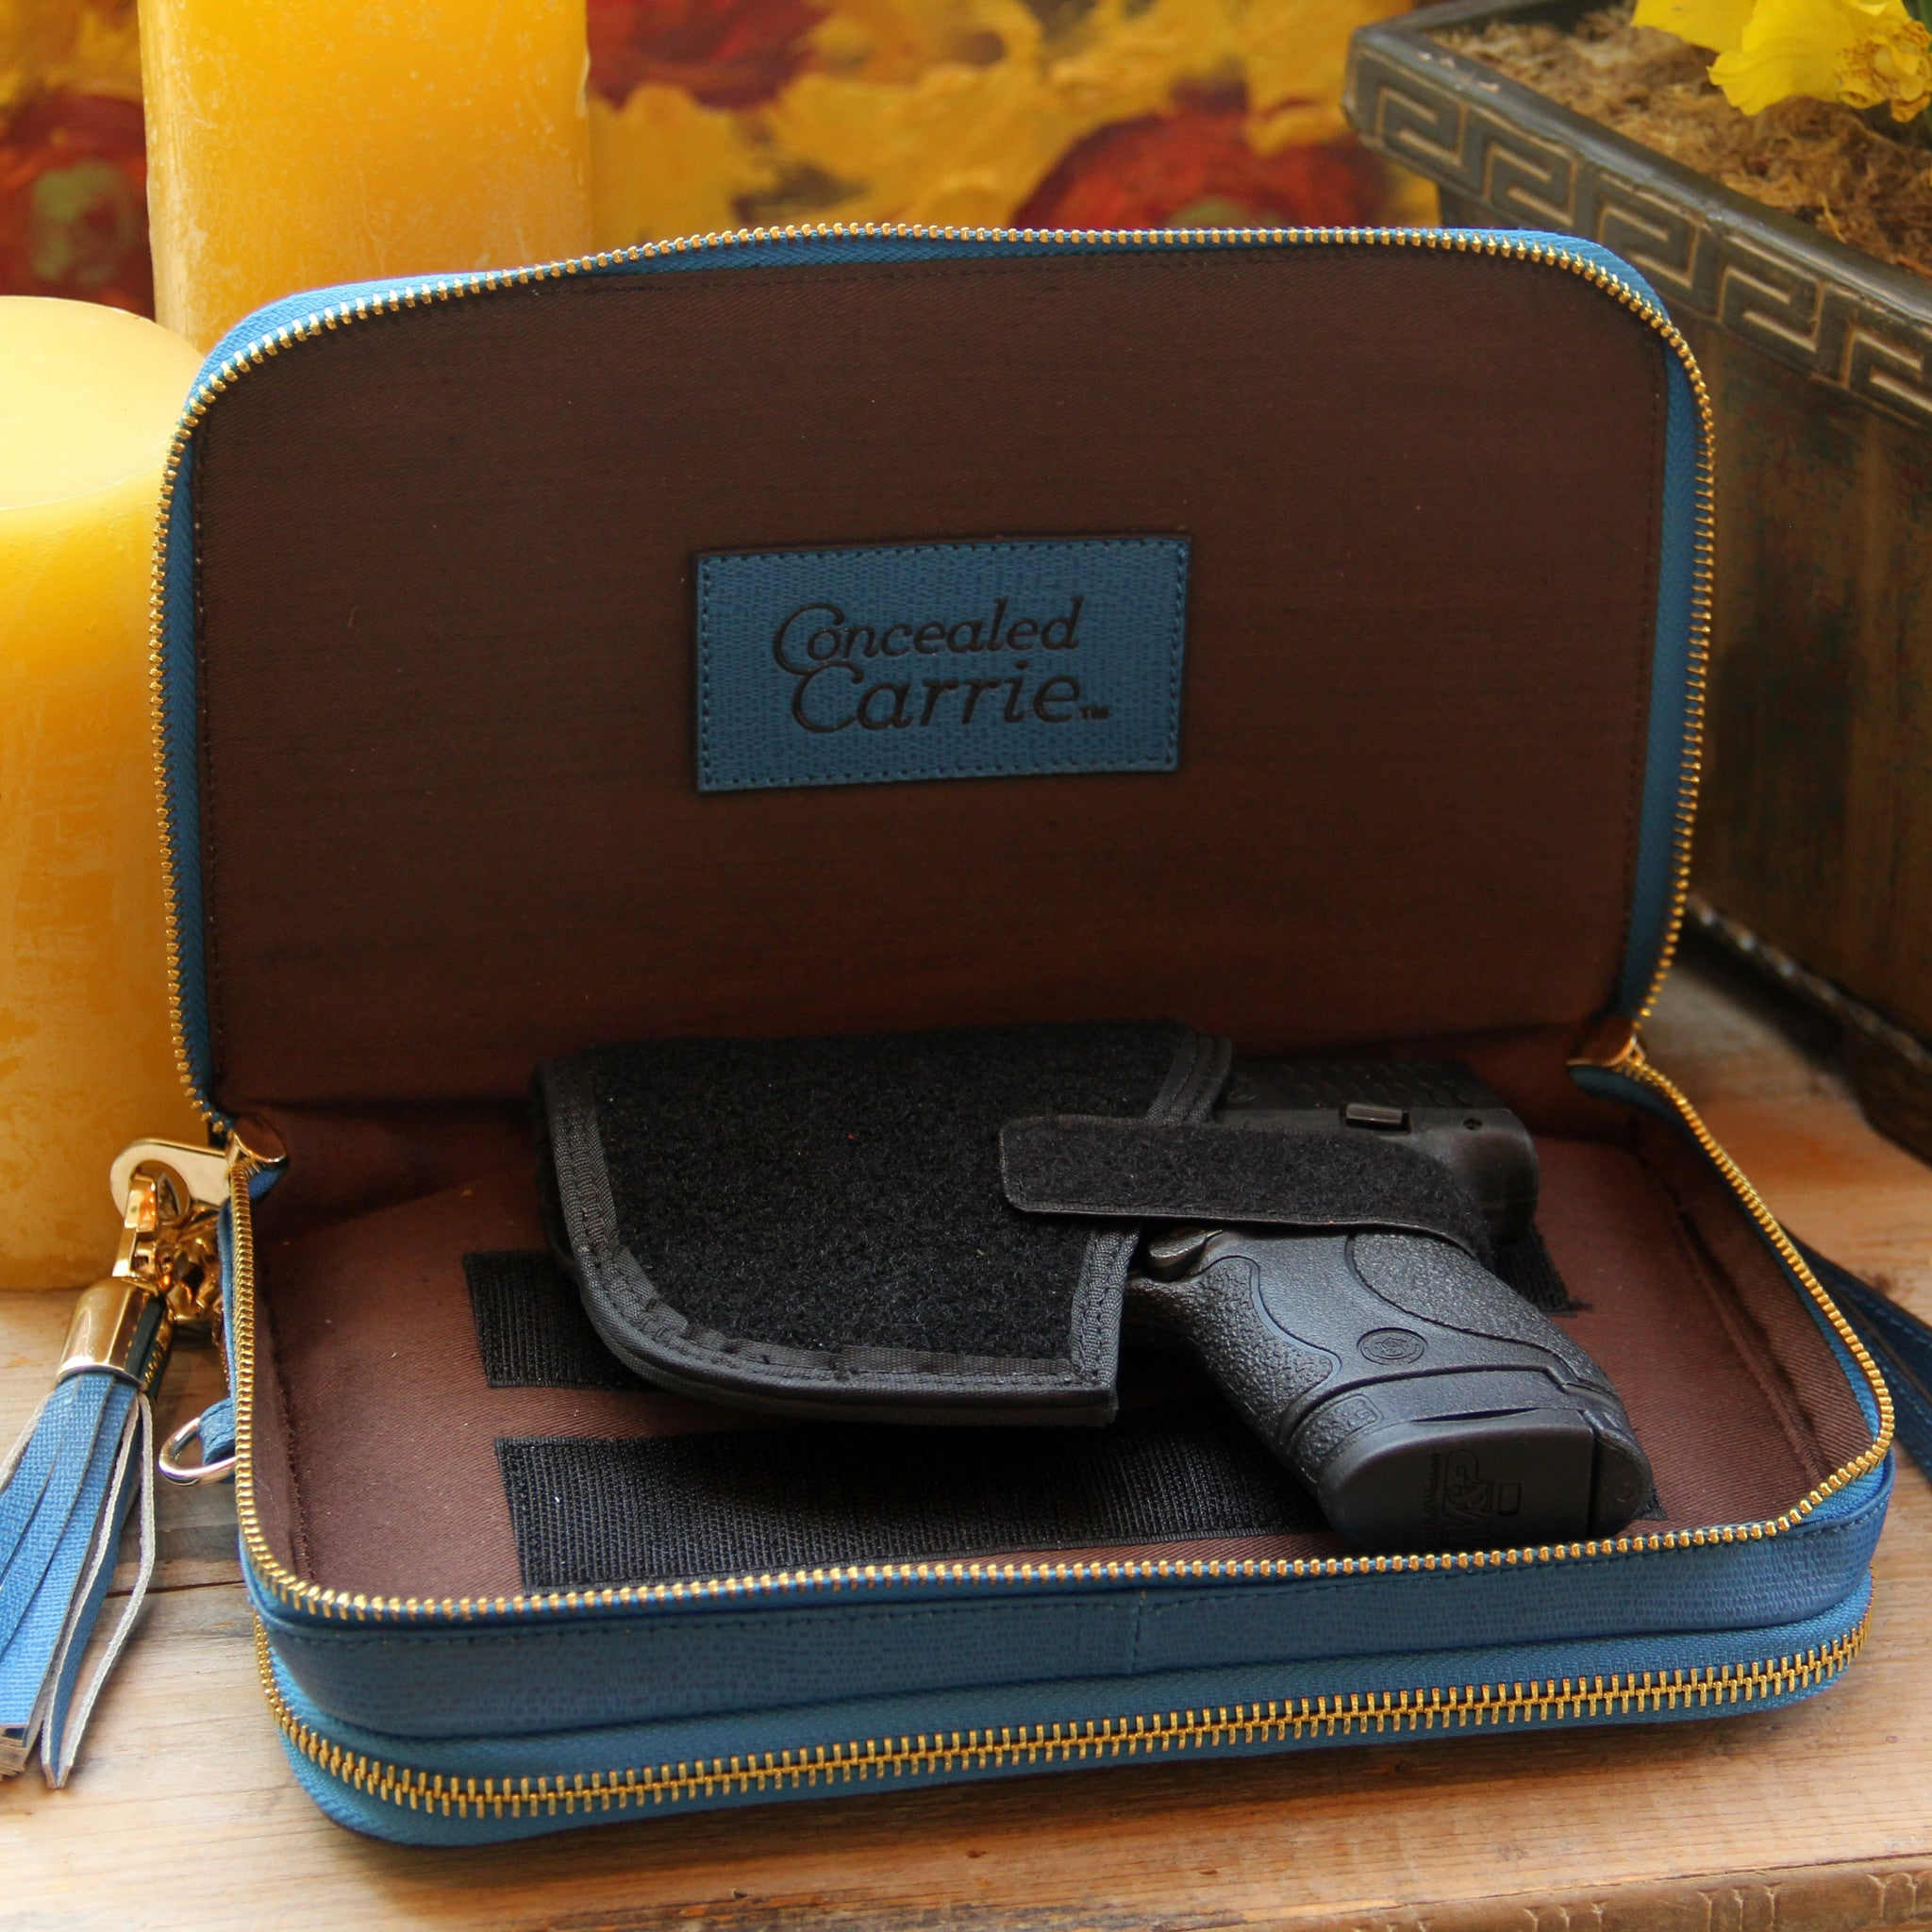 Concealed Carry Leather Compact Clutch Purse w/ Adjustable Holster